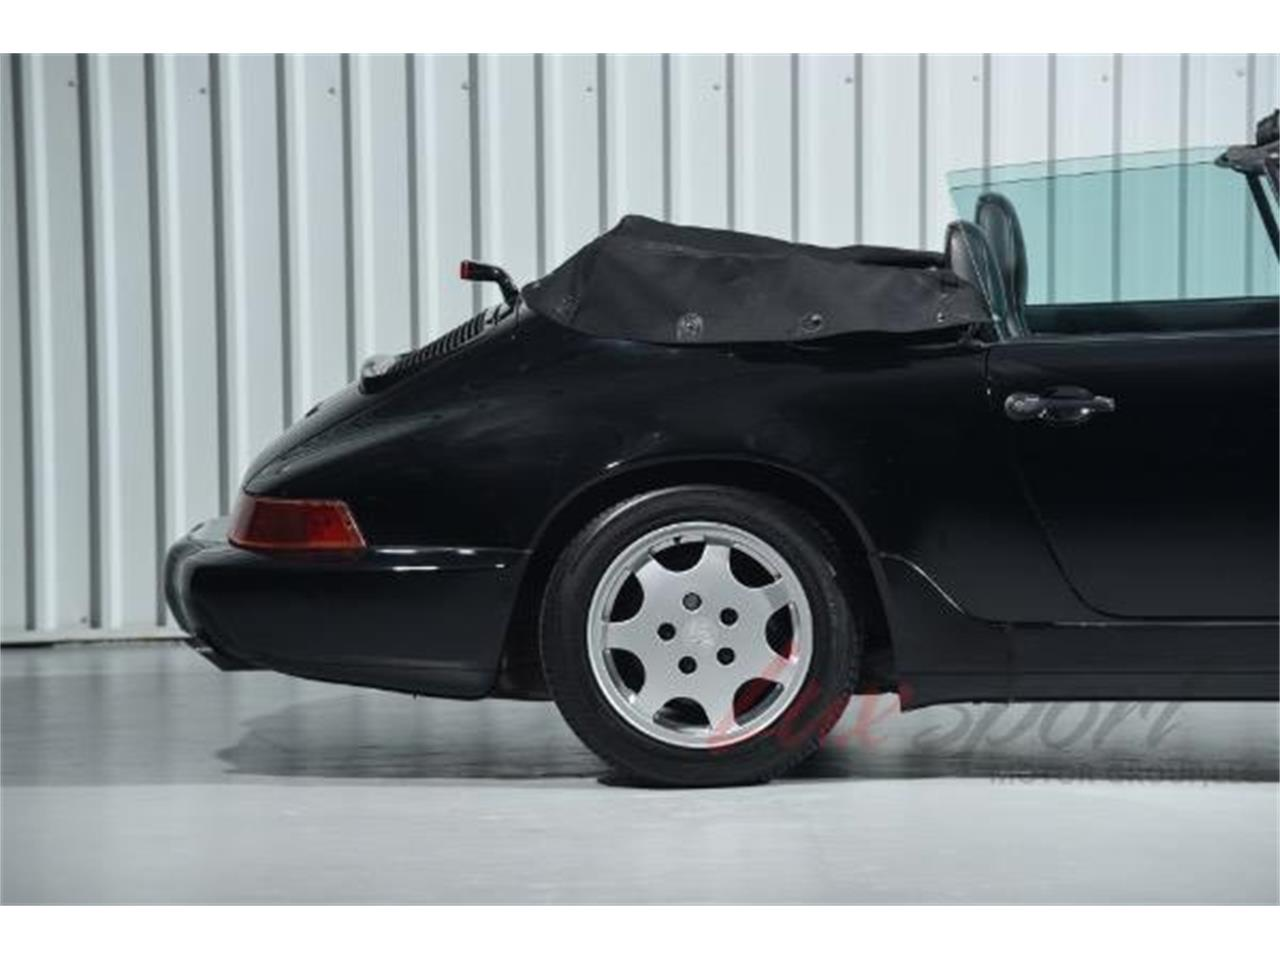 Large Picture of '90 Porsche 964 Carrera 4 Cabriolet located in New Hyde Park New York - MGT0